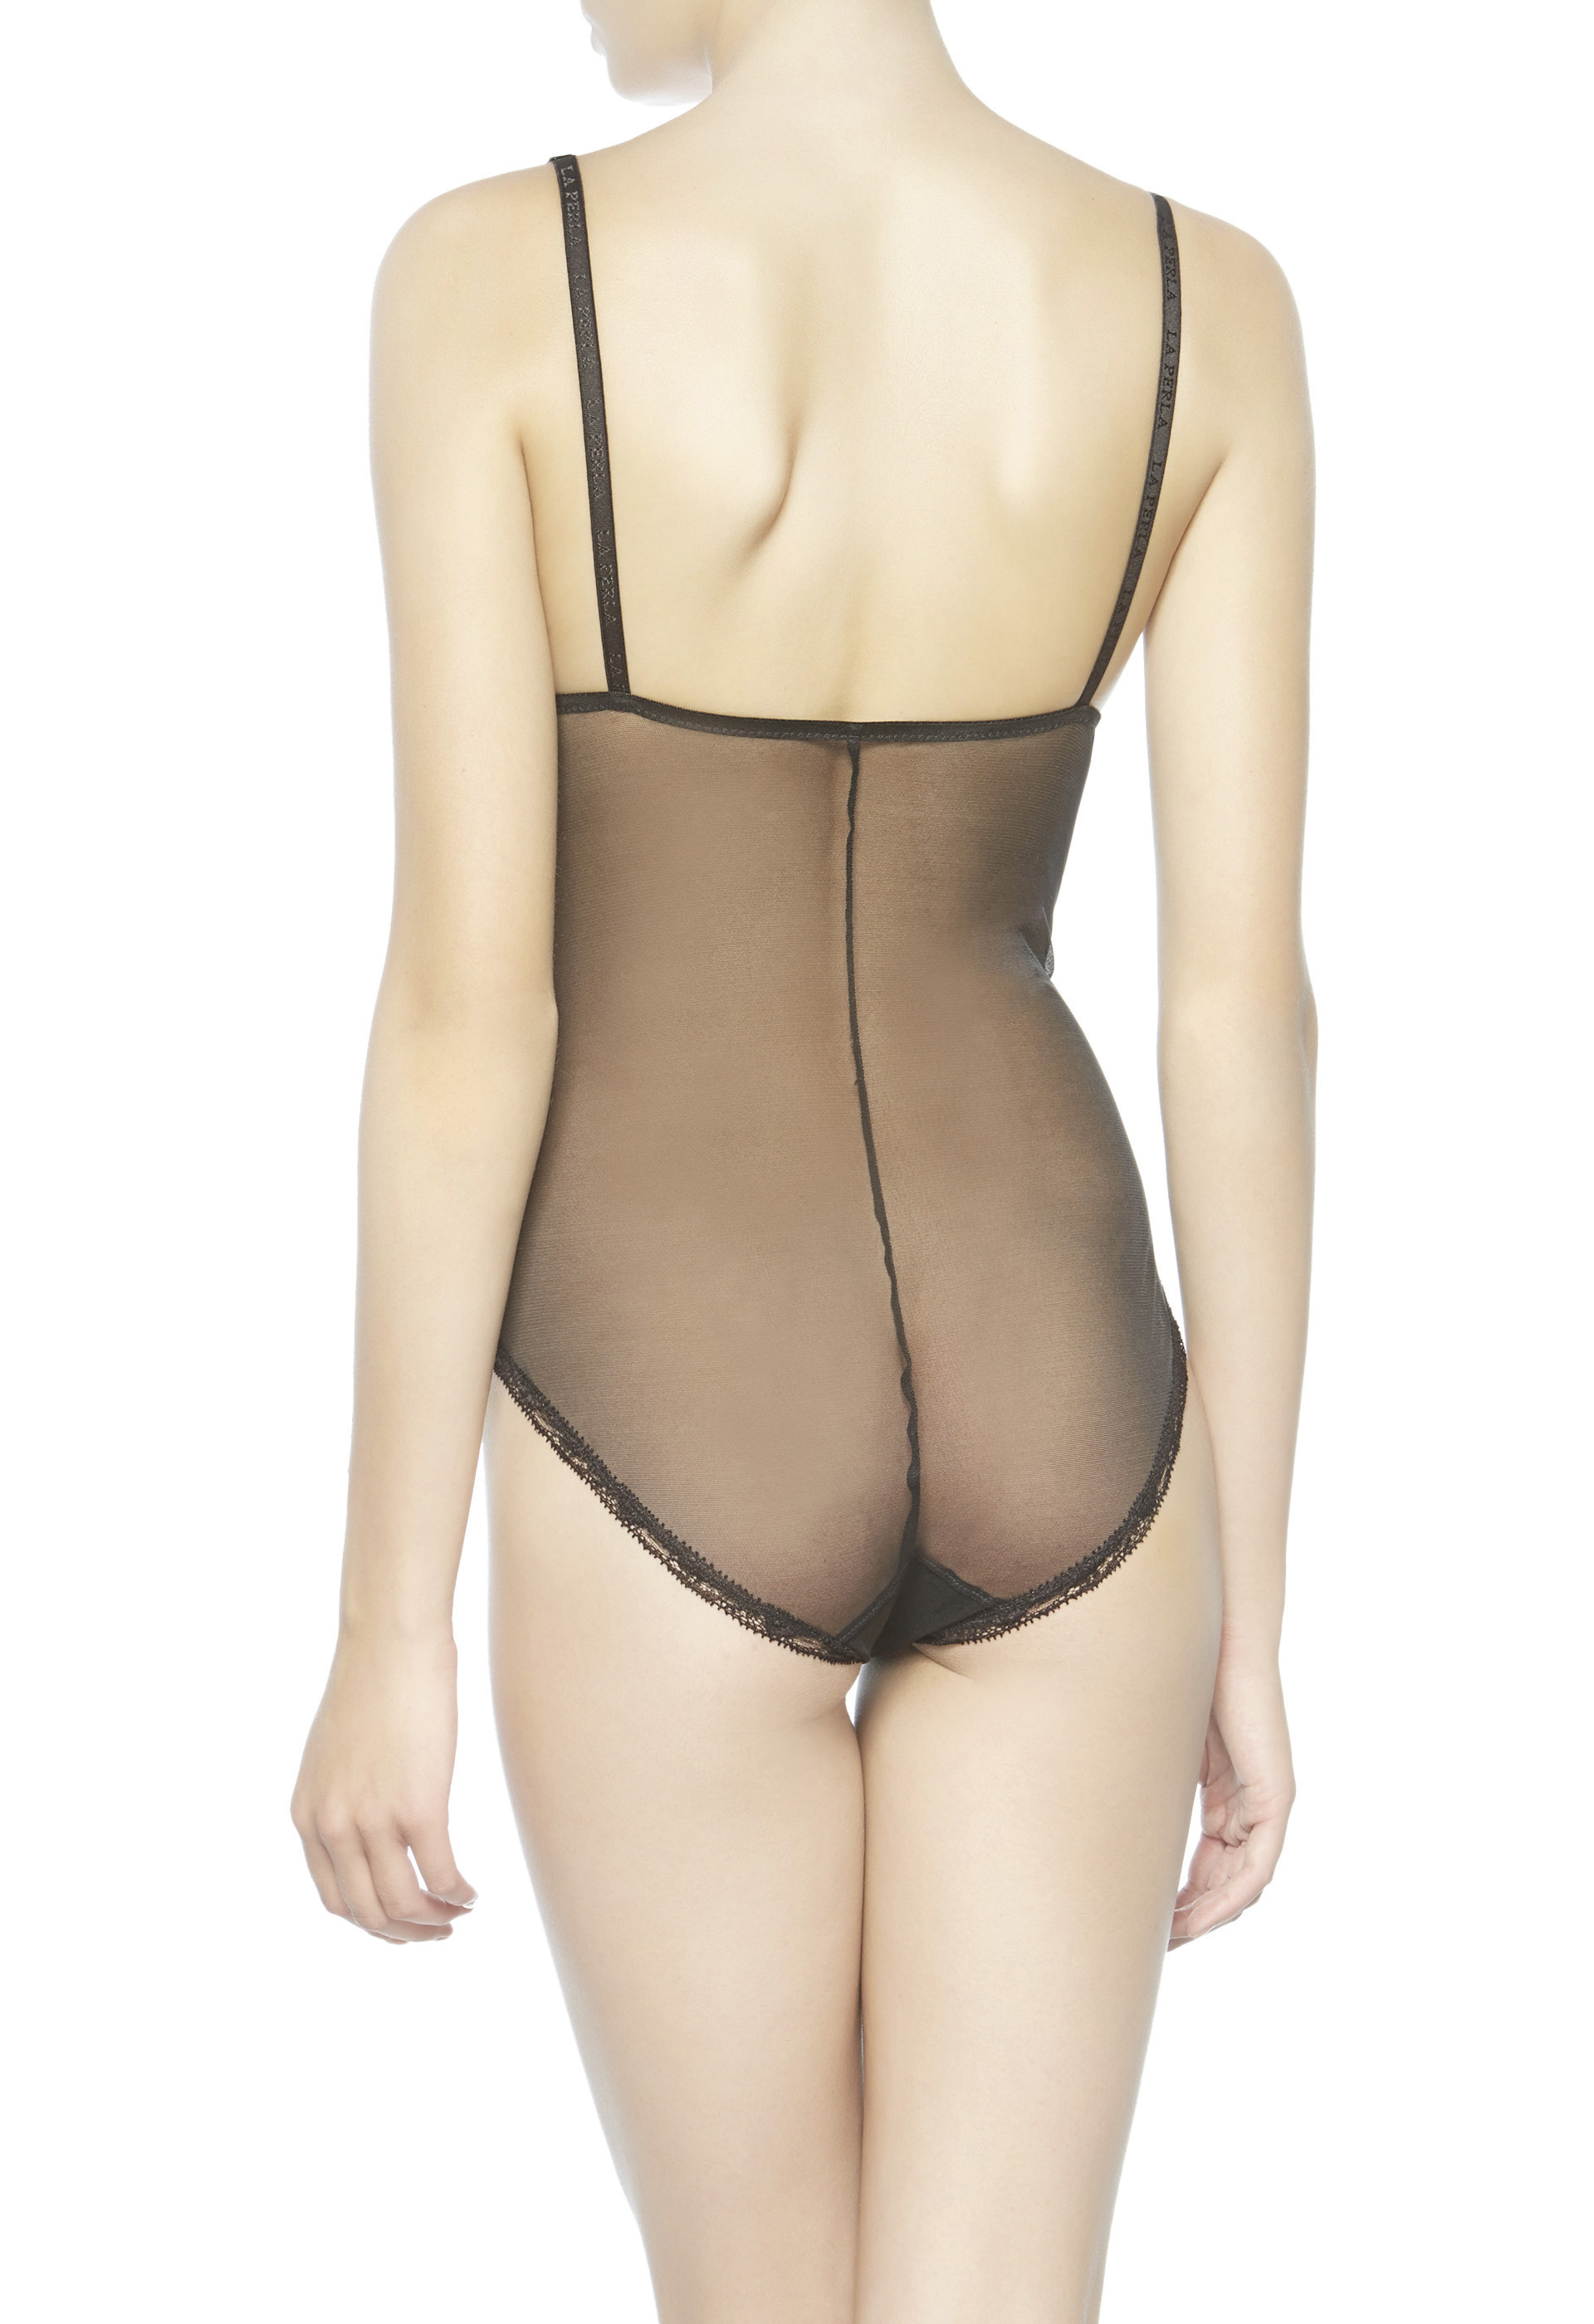 laperla bodysuits 14-03